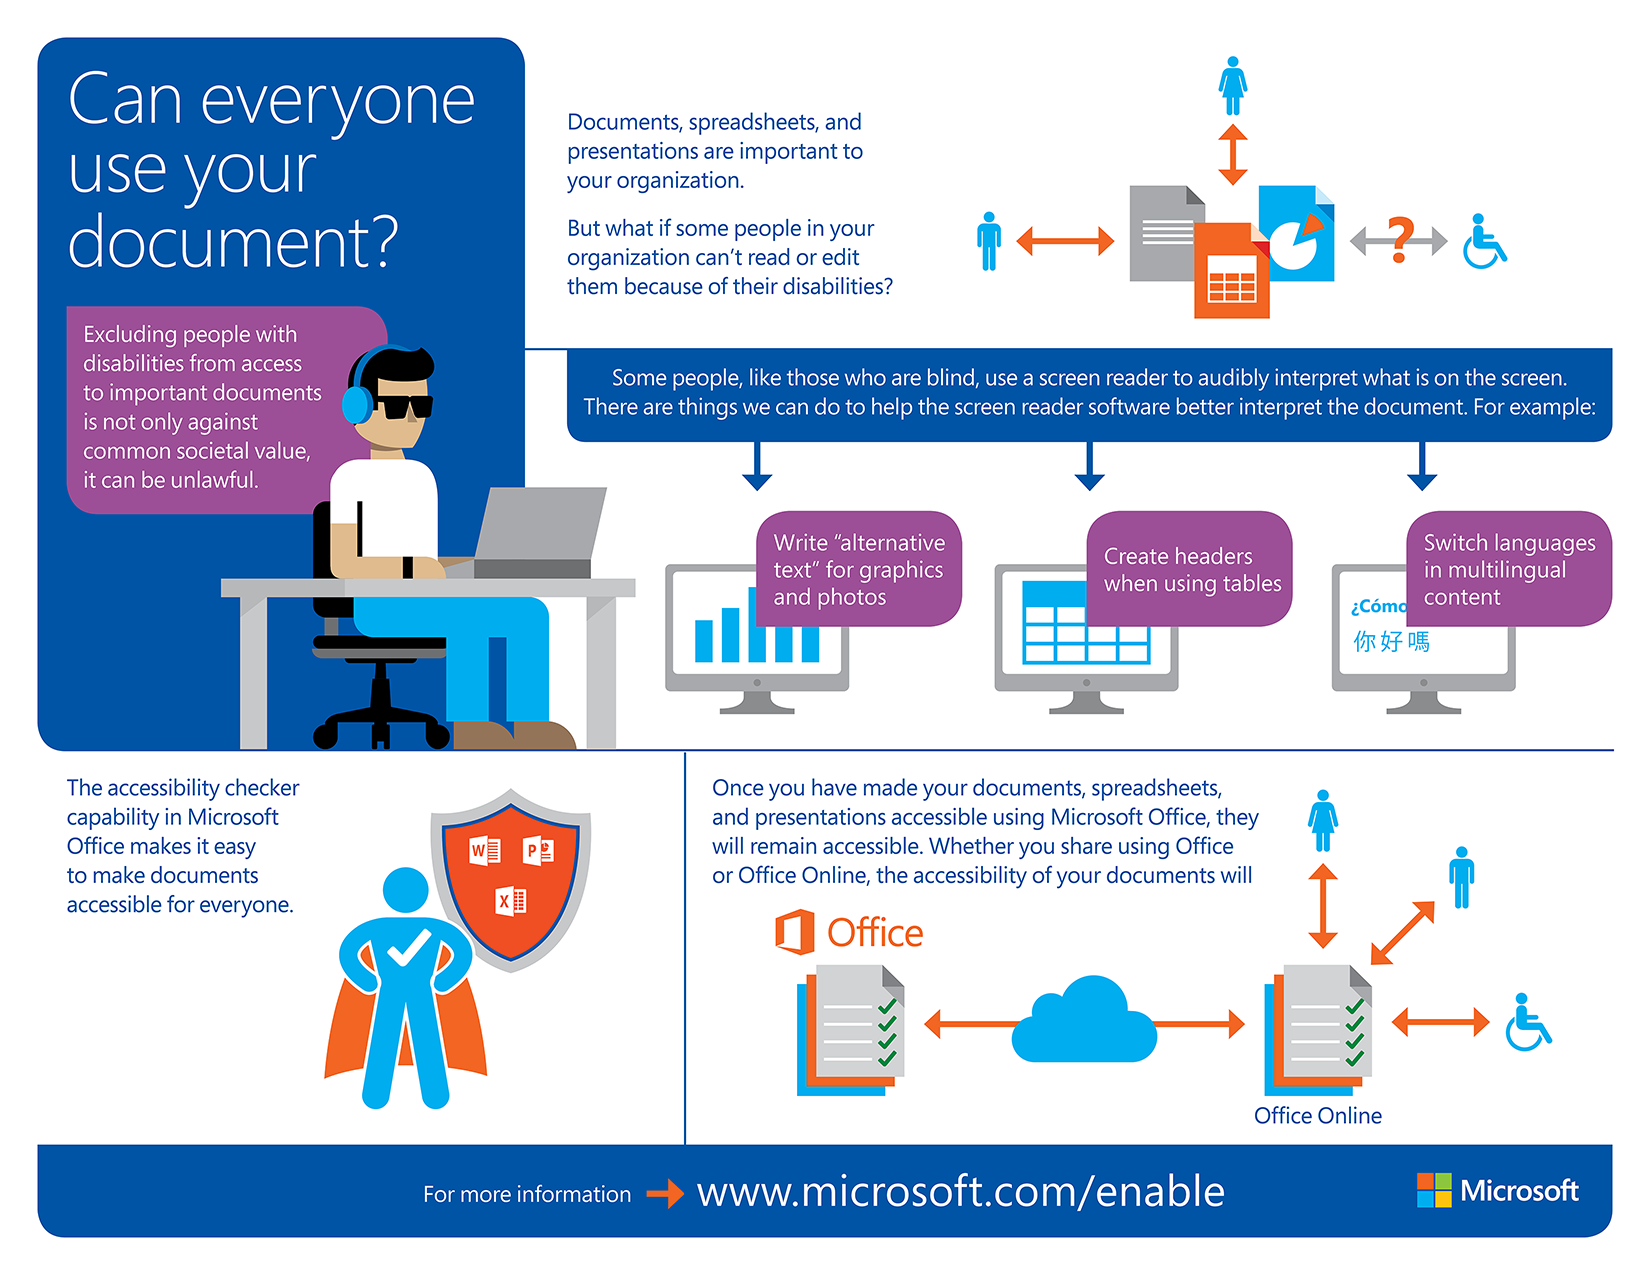 accessibility features in microsoft office help make documents accesible to all download the infographic